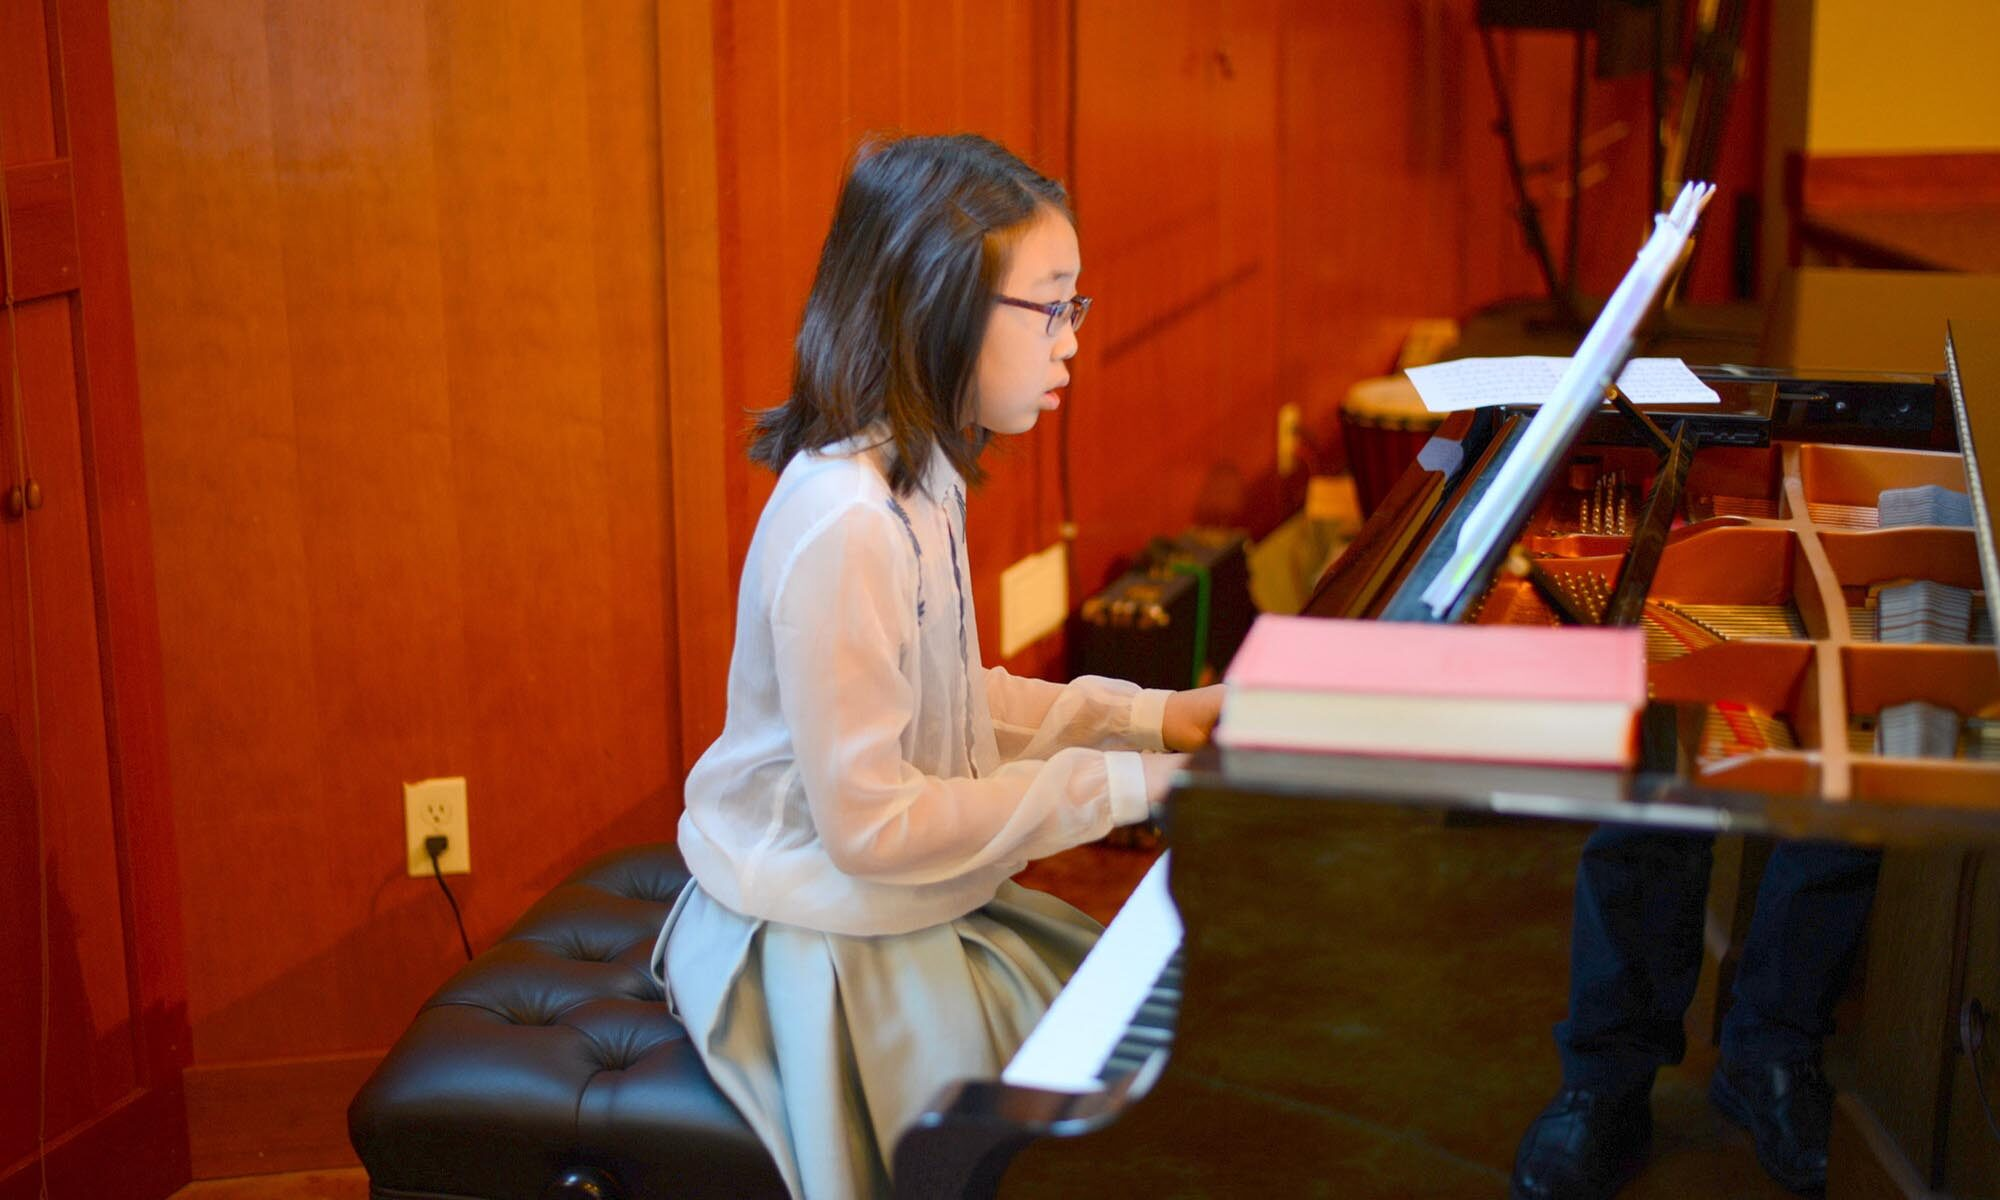 Our young pianist True Light Christian Church